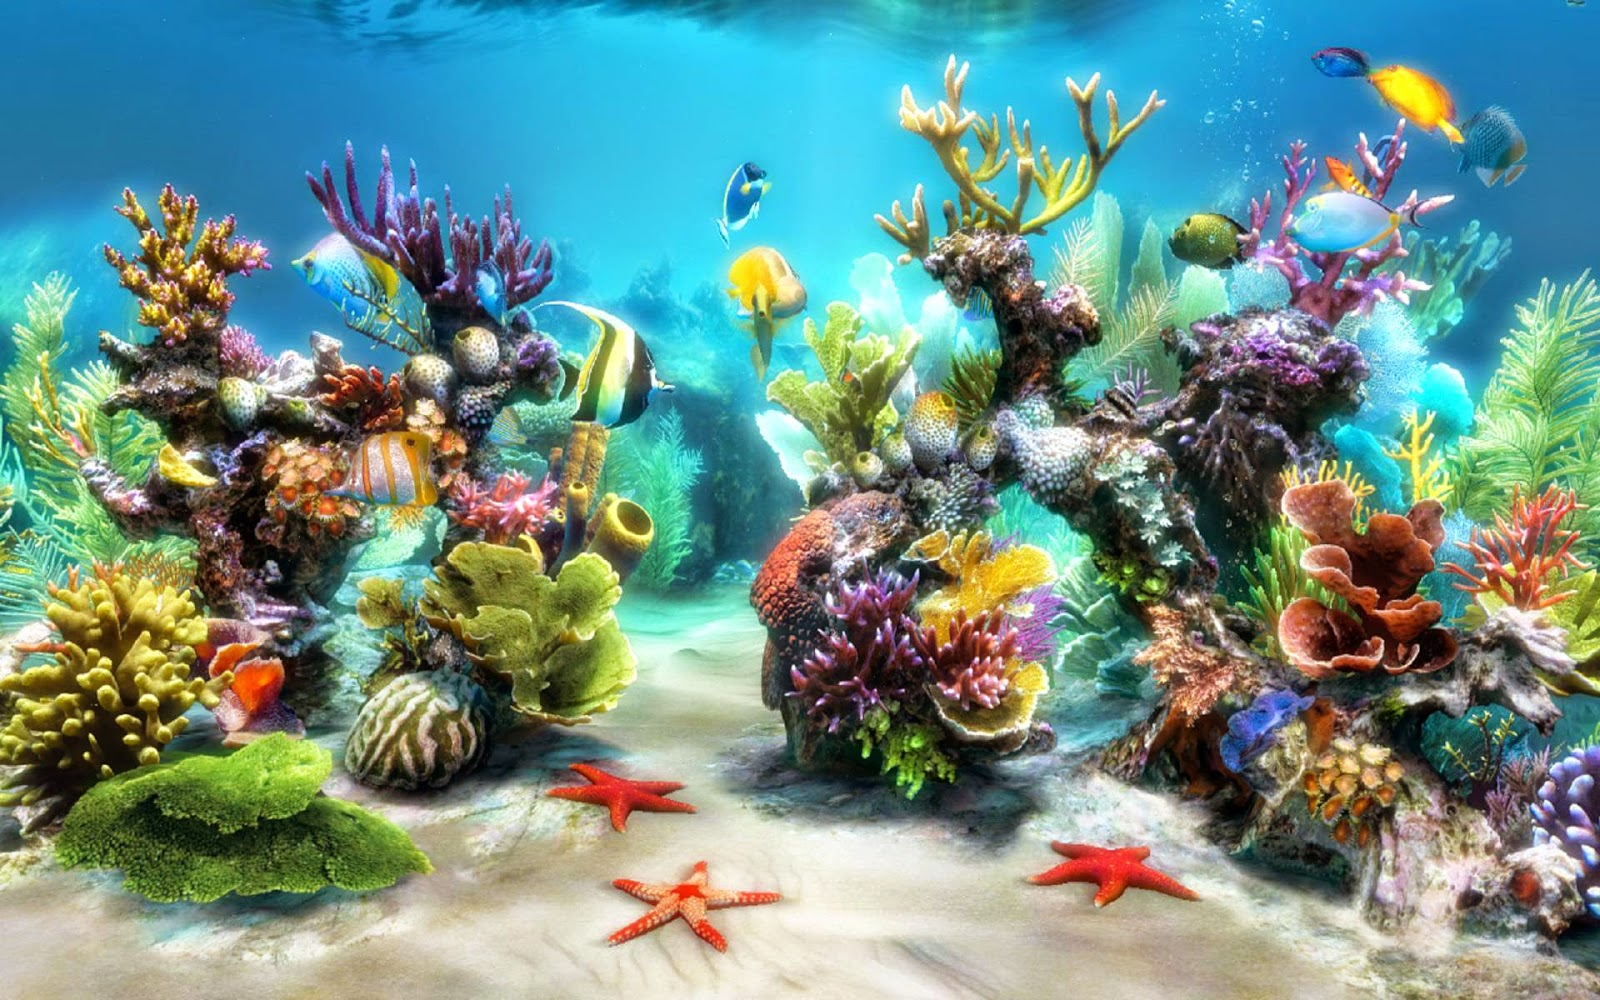 Ocean Life Desktop Background